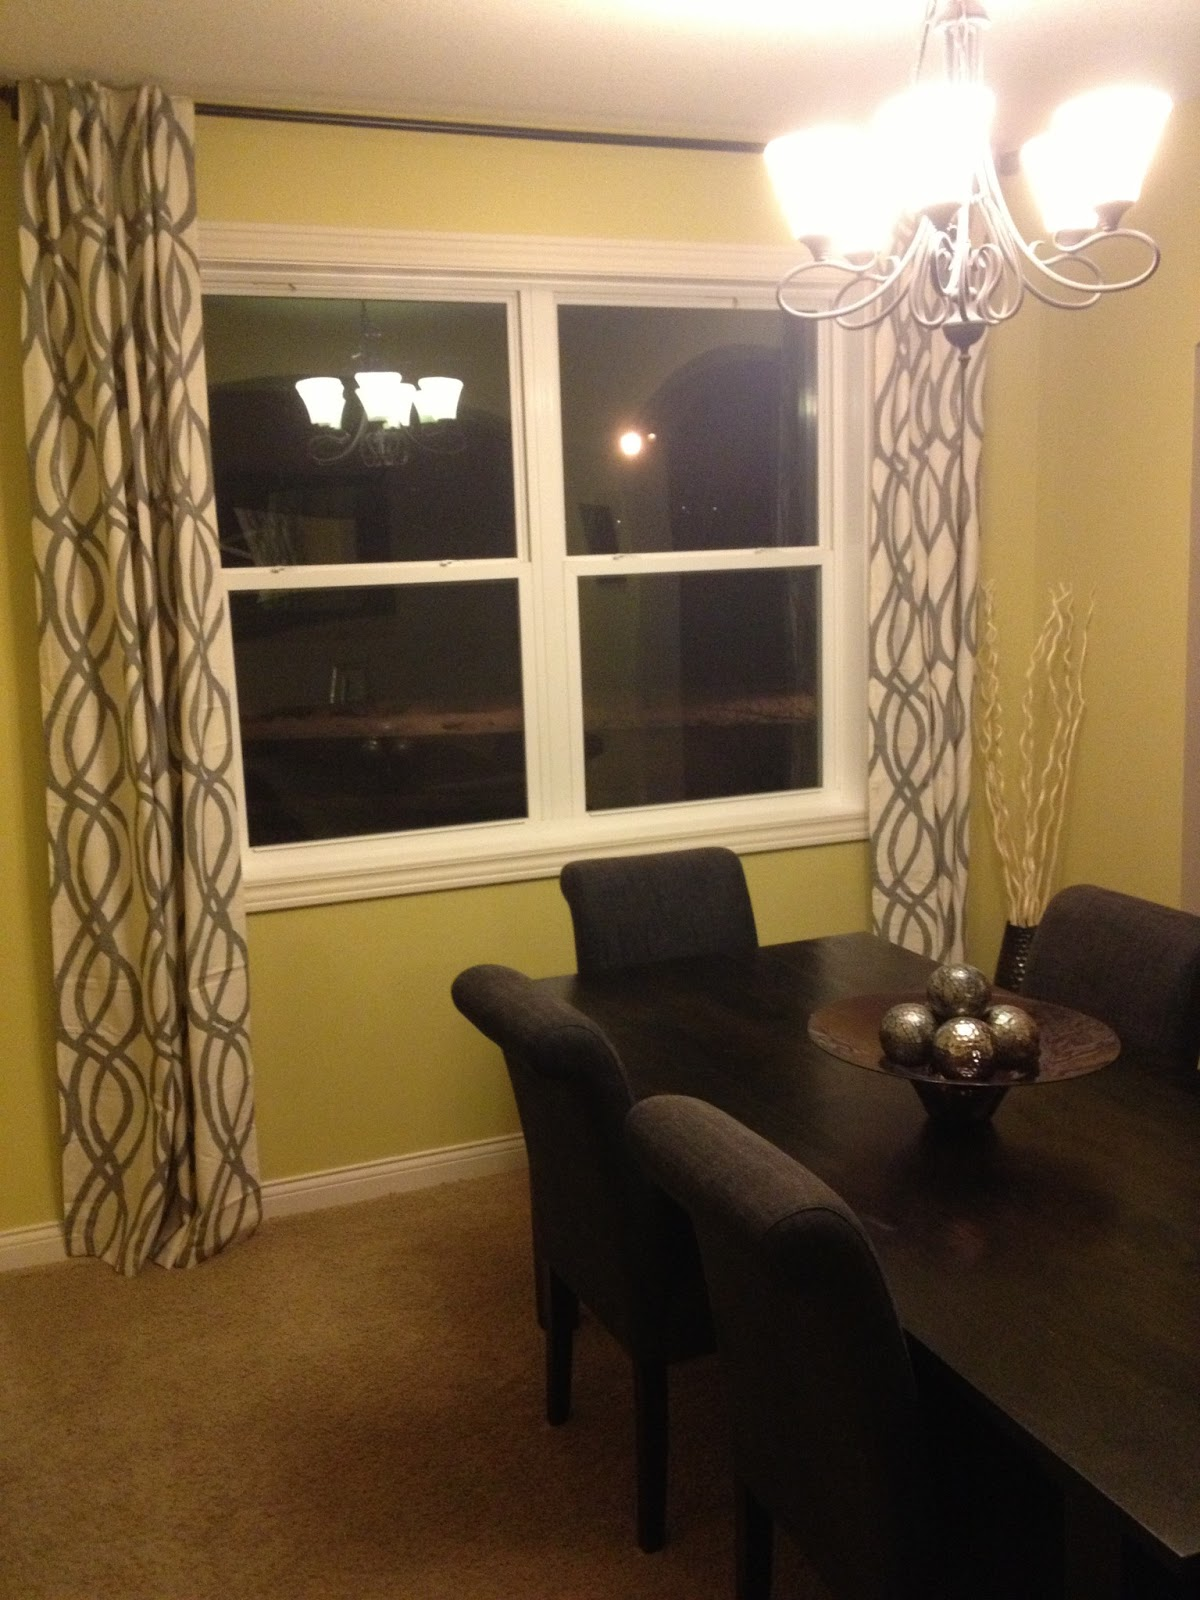 Our Styled Suburban Life: Dining Room Curtains on Dining Room Curtains  id=19157